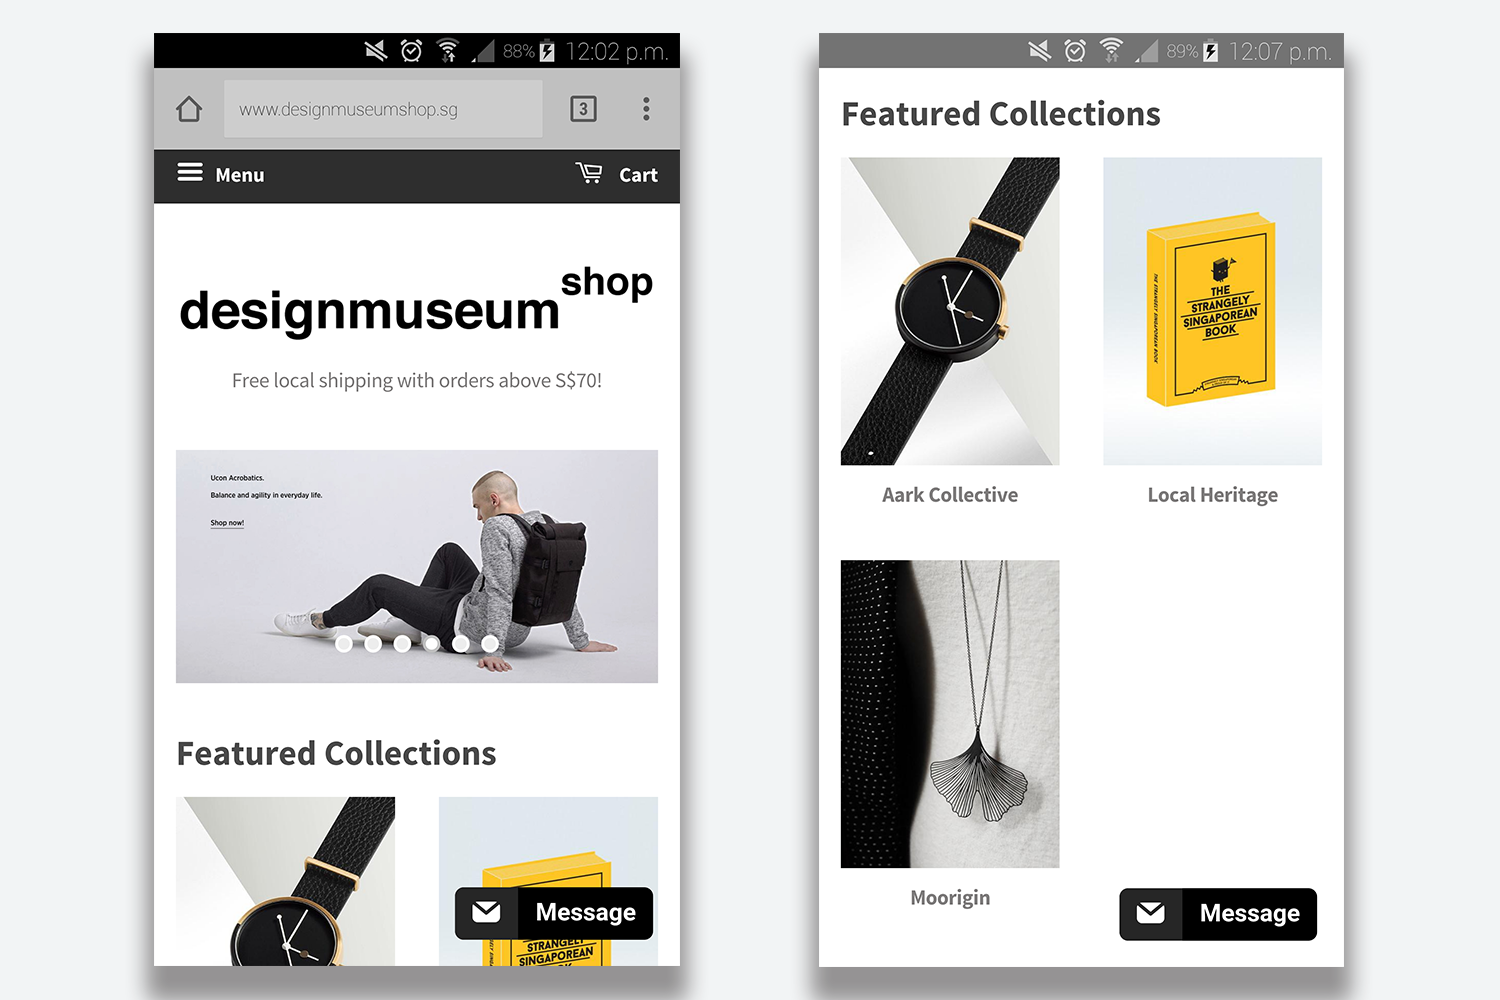 Mobile_view_of_Design_Museum_Shop_website